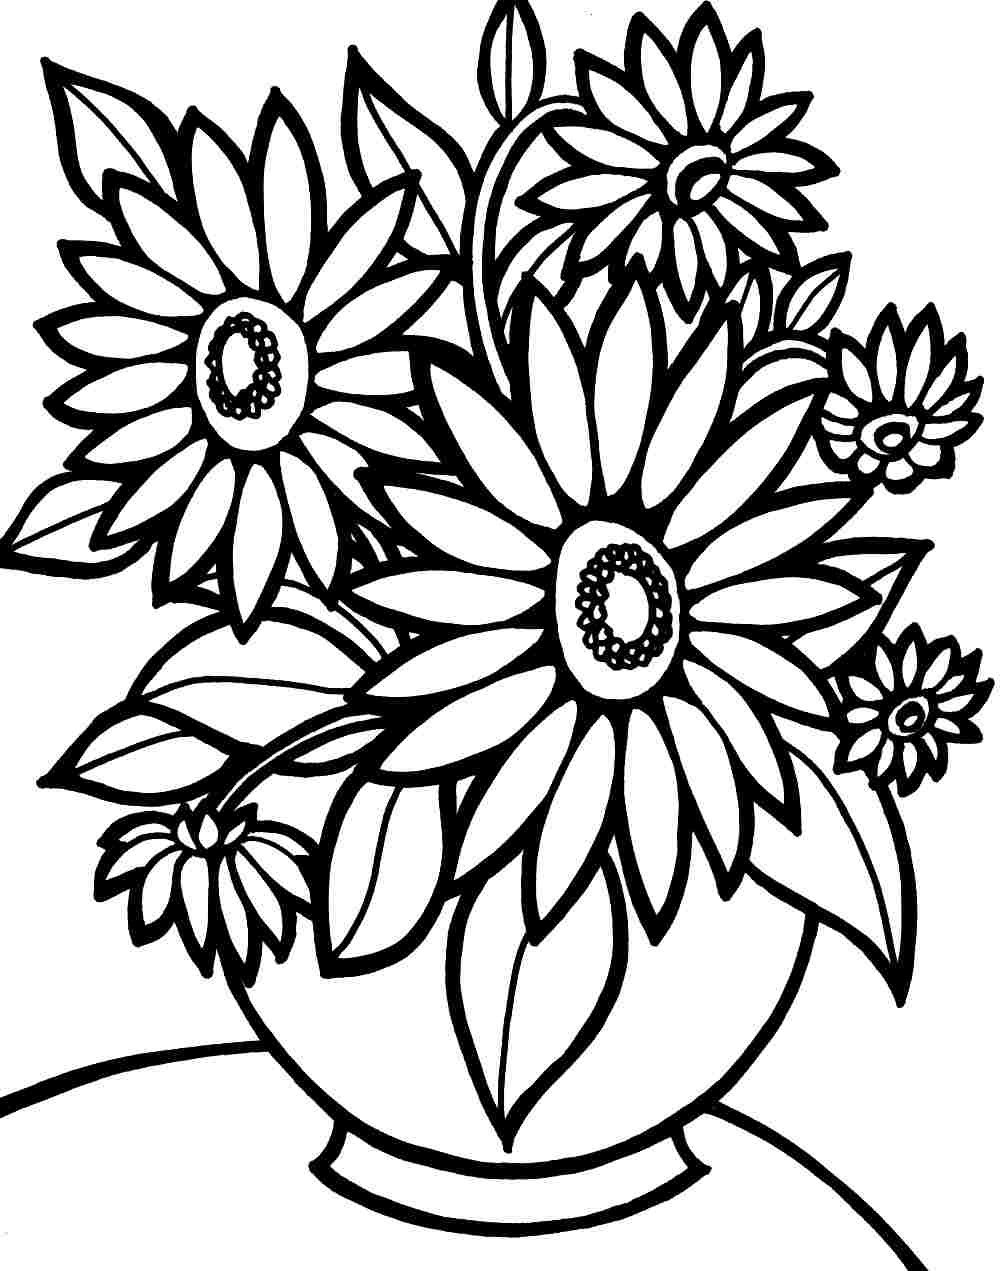 Flower Coloring Pages   Free Download Best Flower Coloring Pages On - Free Printable Flower Coloring Pages